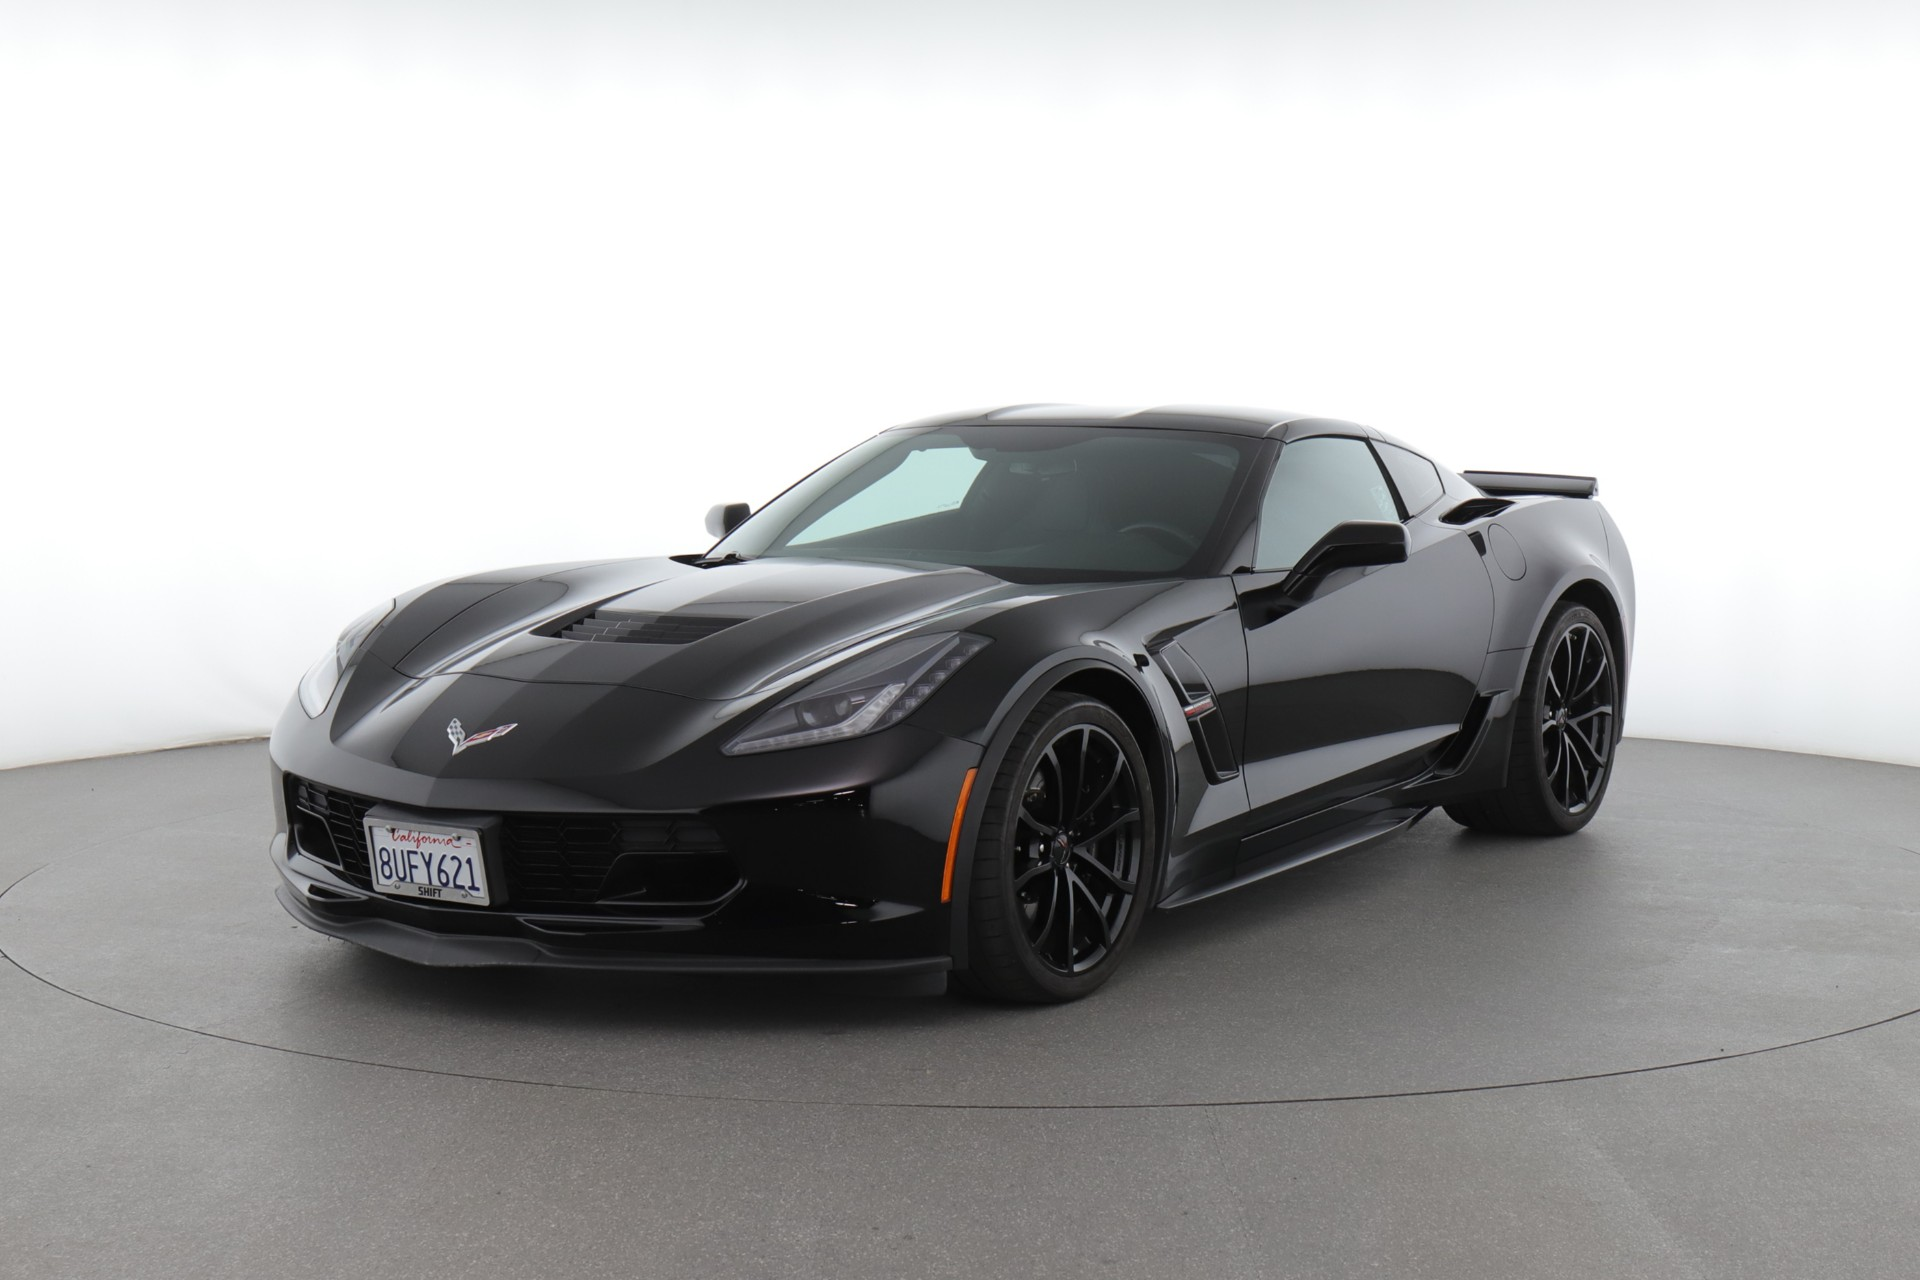 How Fast Is A Corvette?